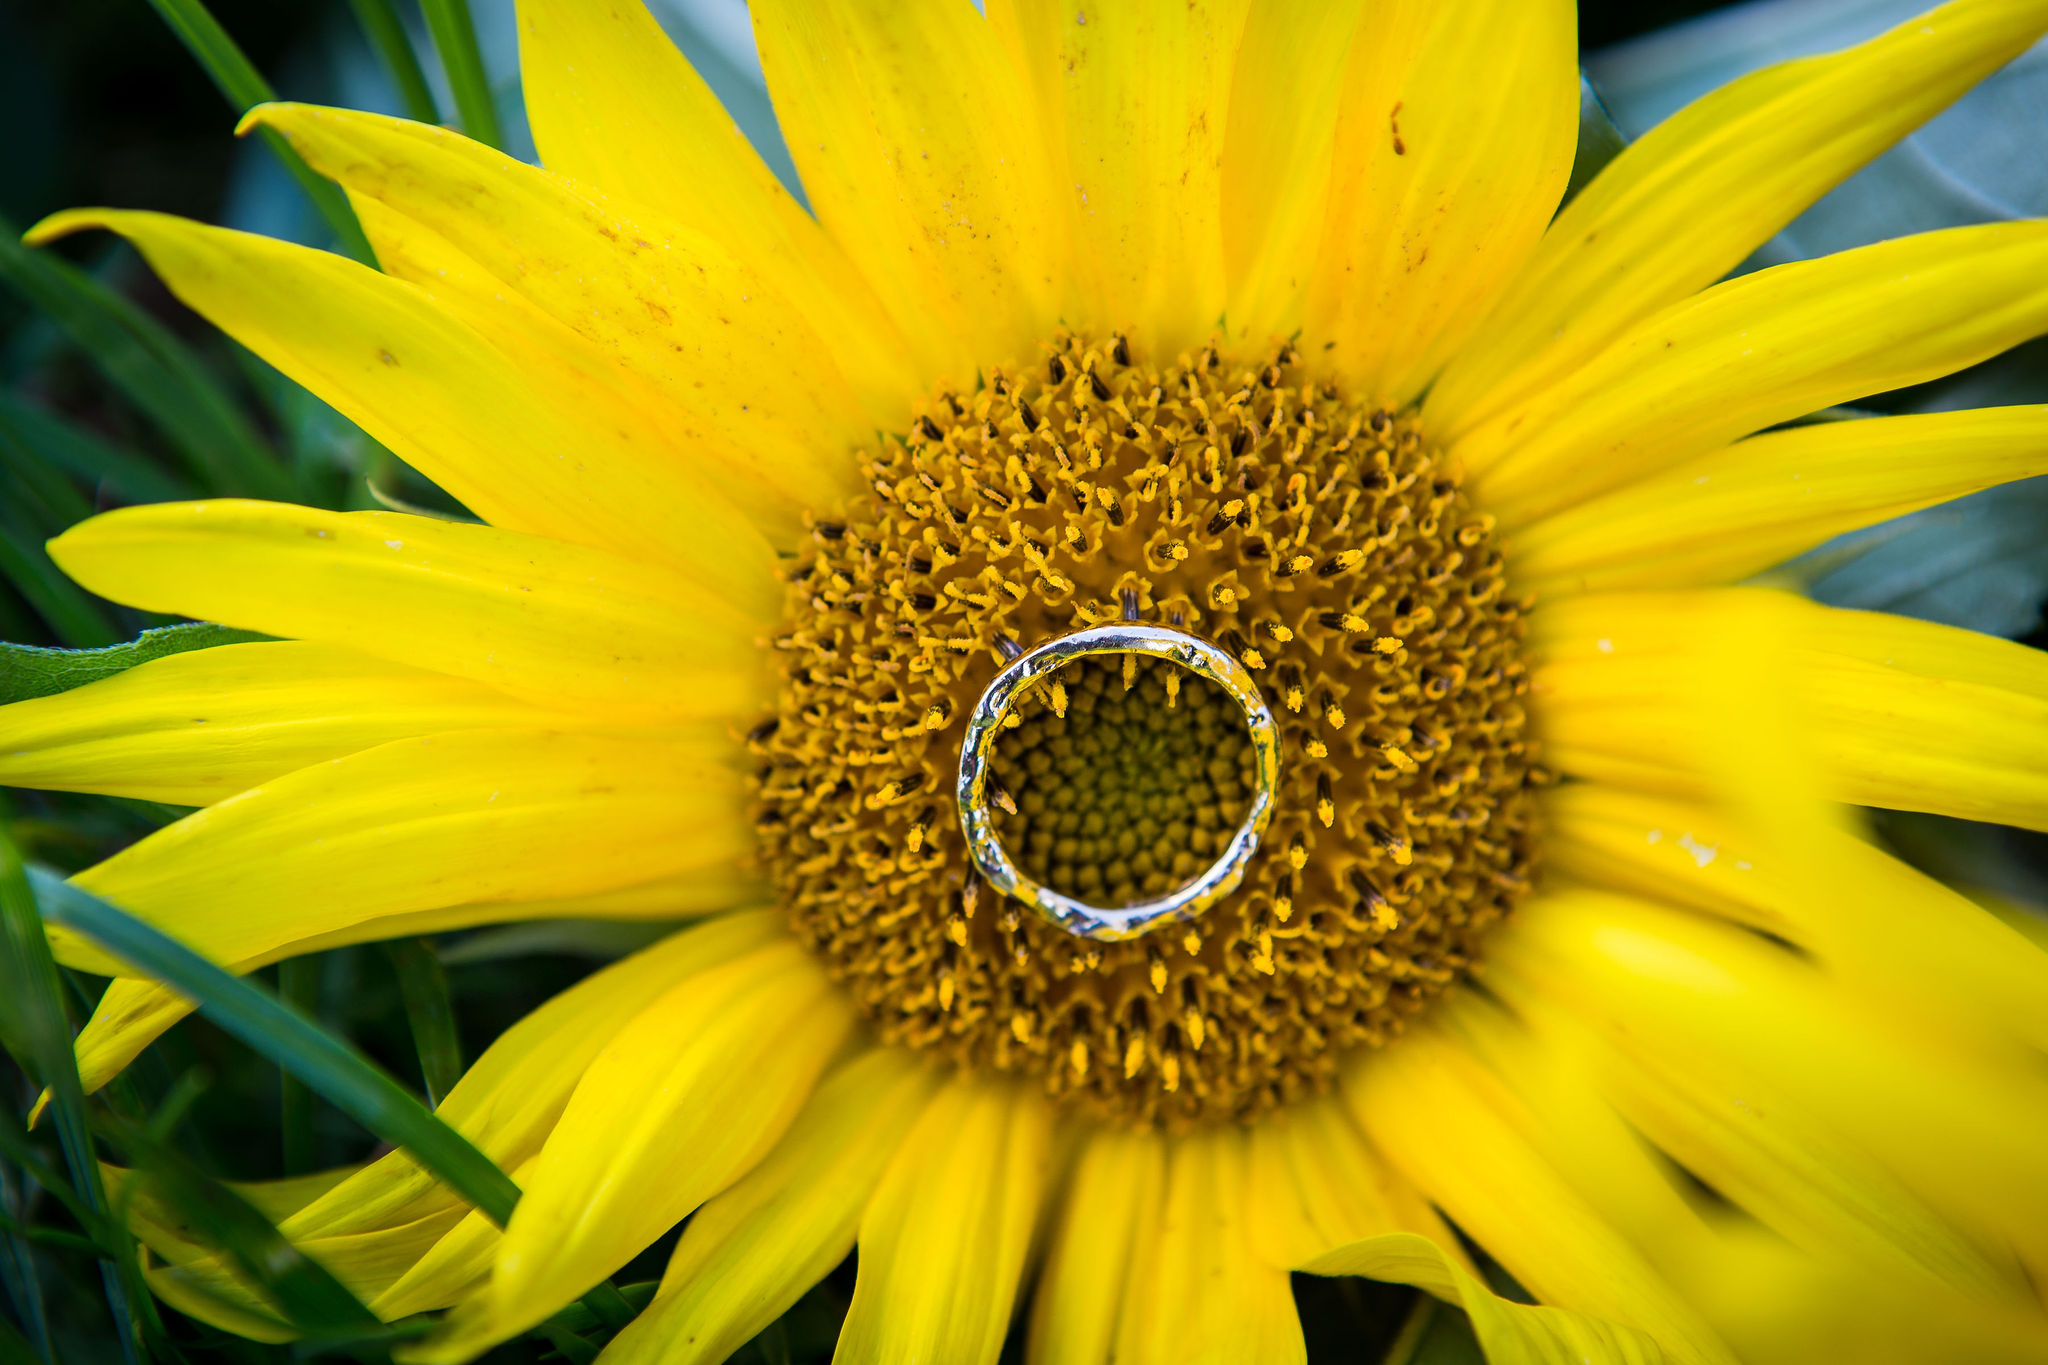 sunflower themed wedding - unconventional wedding - sunflower wedding - autumn wedding - alternative wedding planning - handmade wedding ring - unique wedding ring